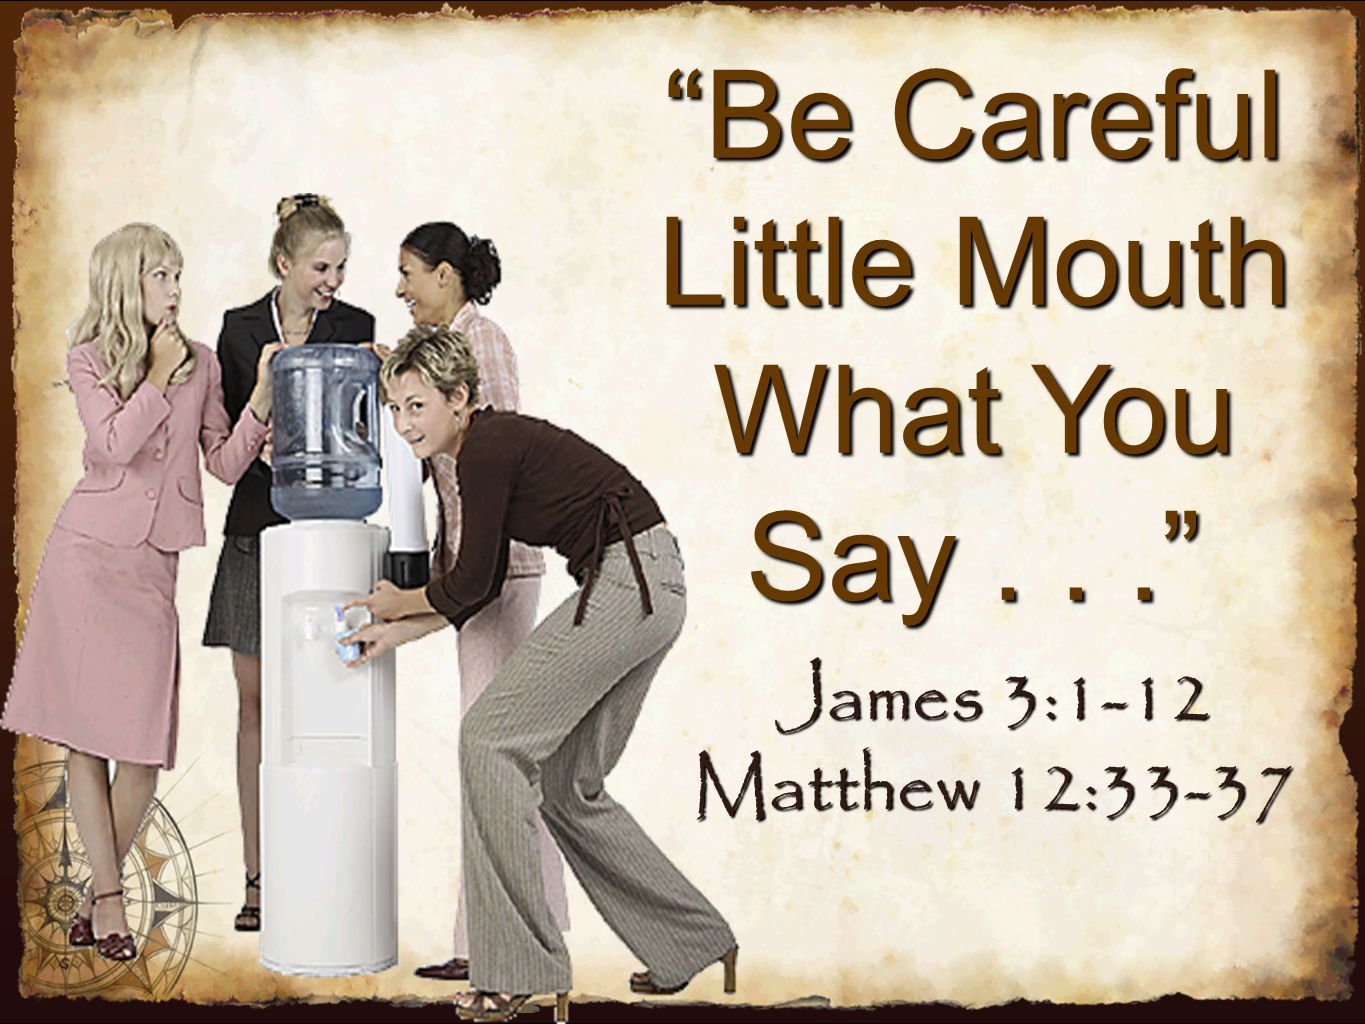 Be Careful Little Mouth What You Say . . .